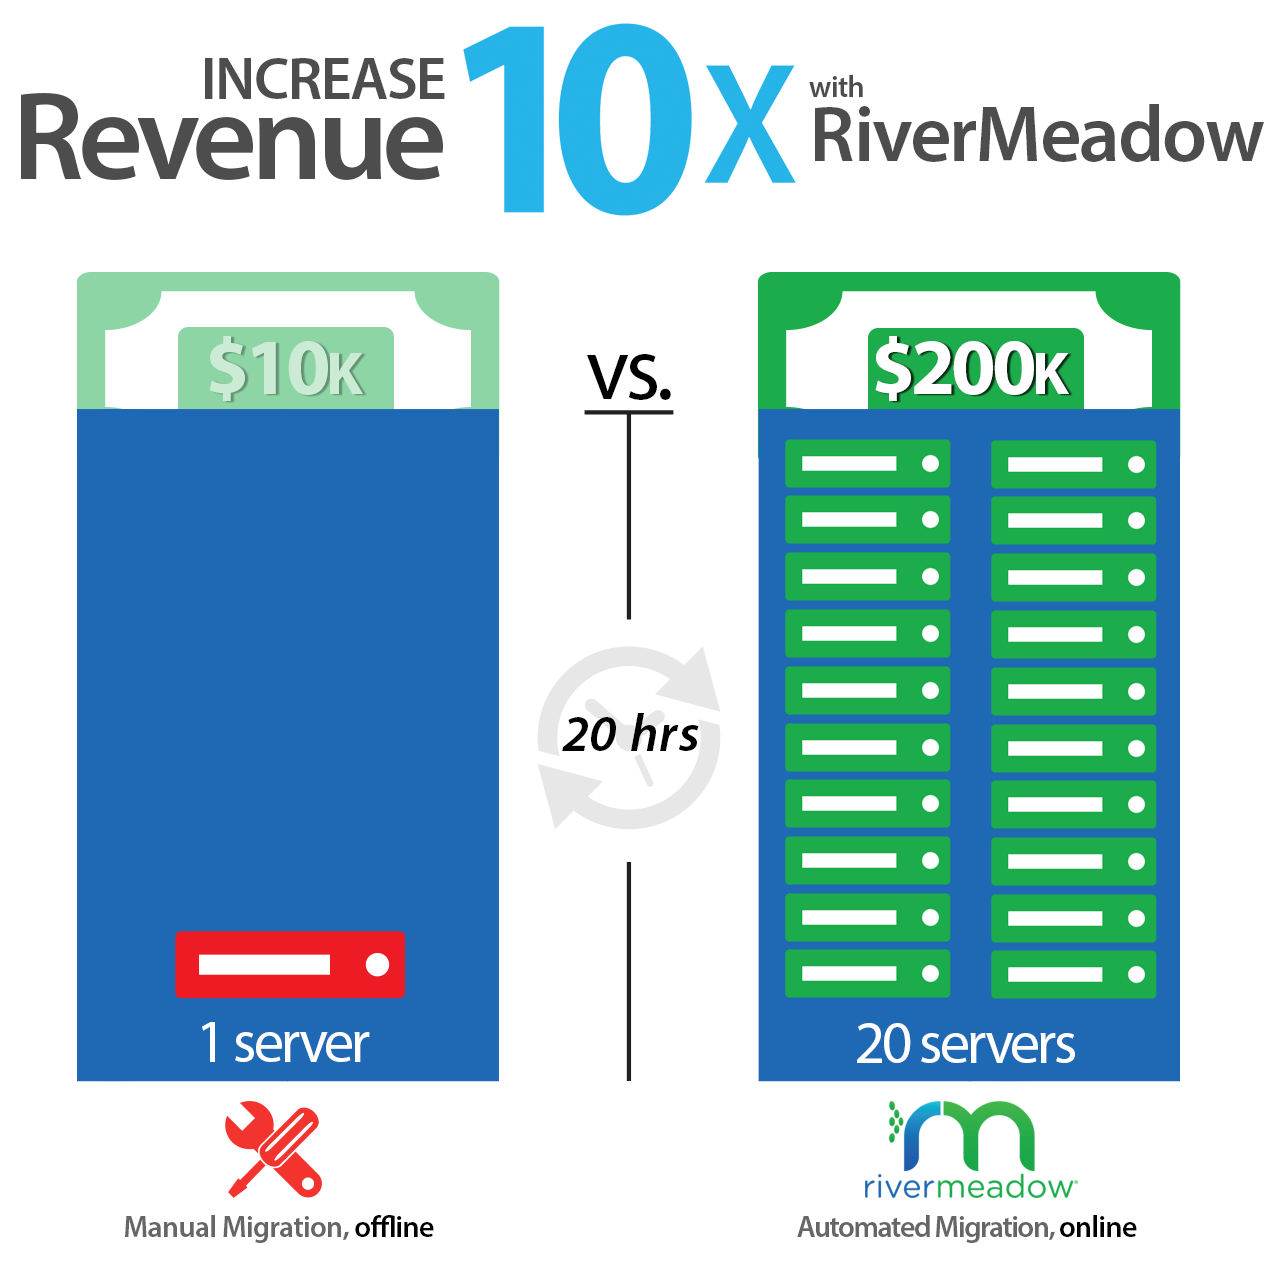 Increase Revenue 10x with RiverMeadow Cloud Migration